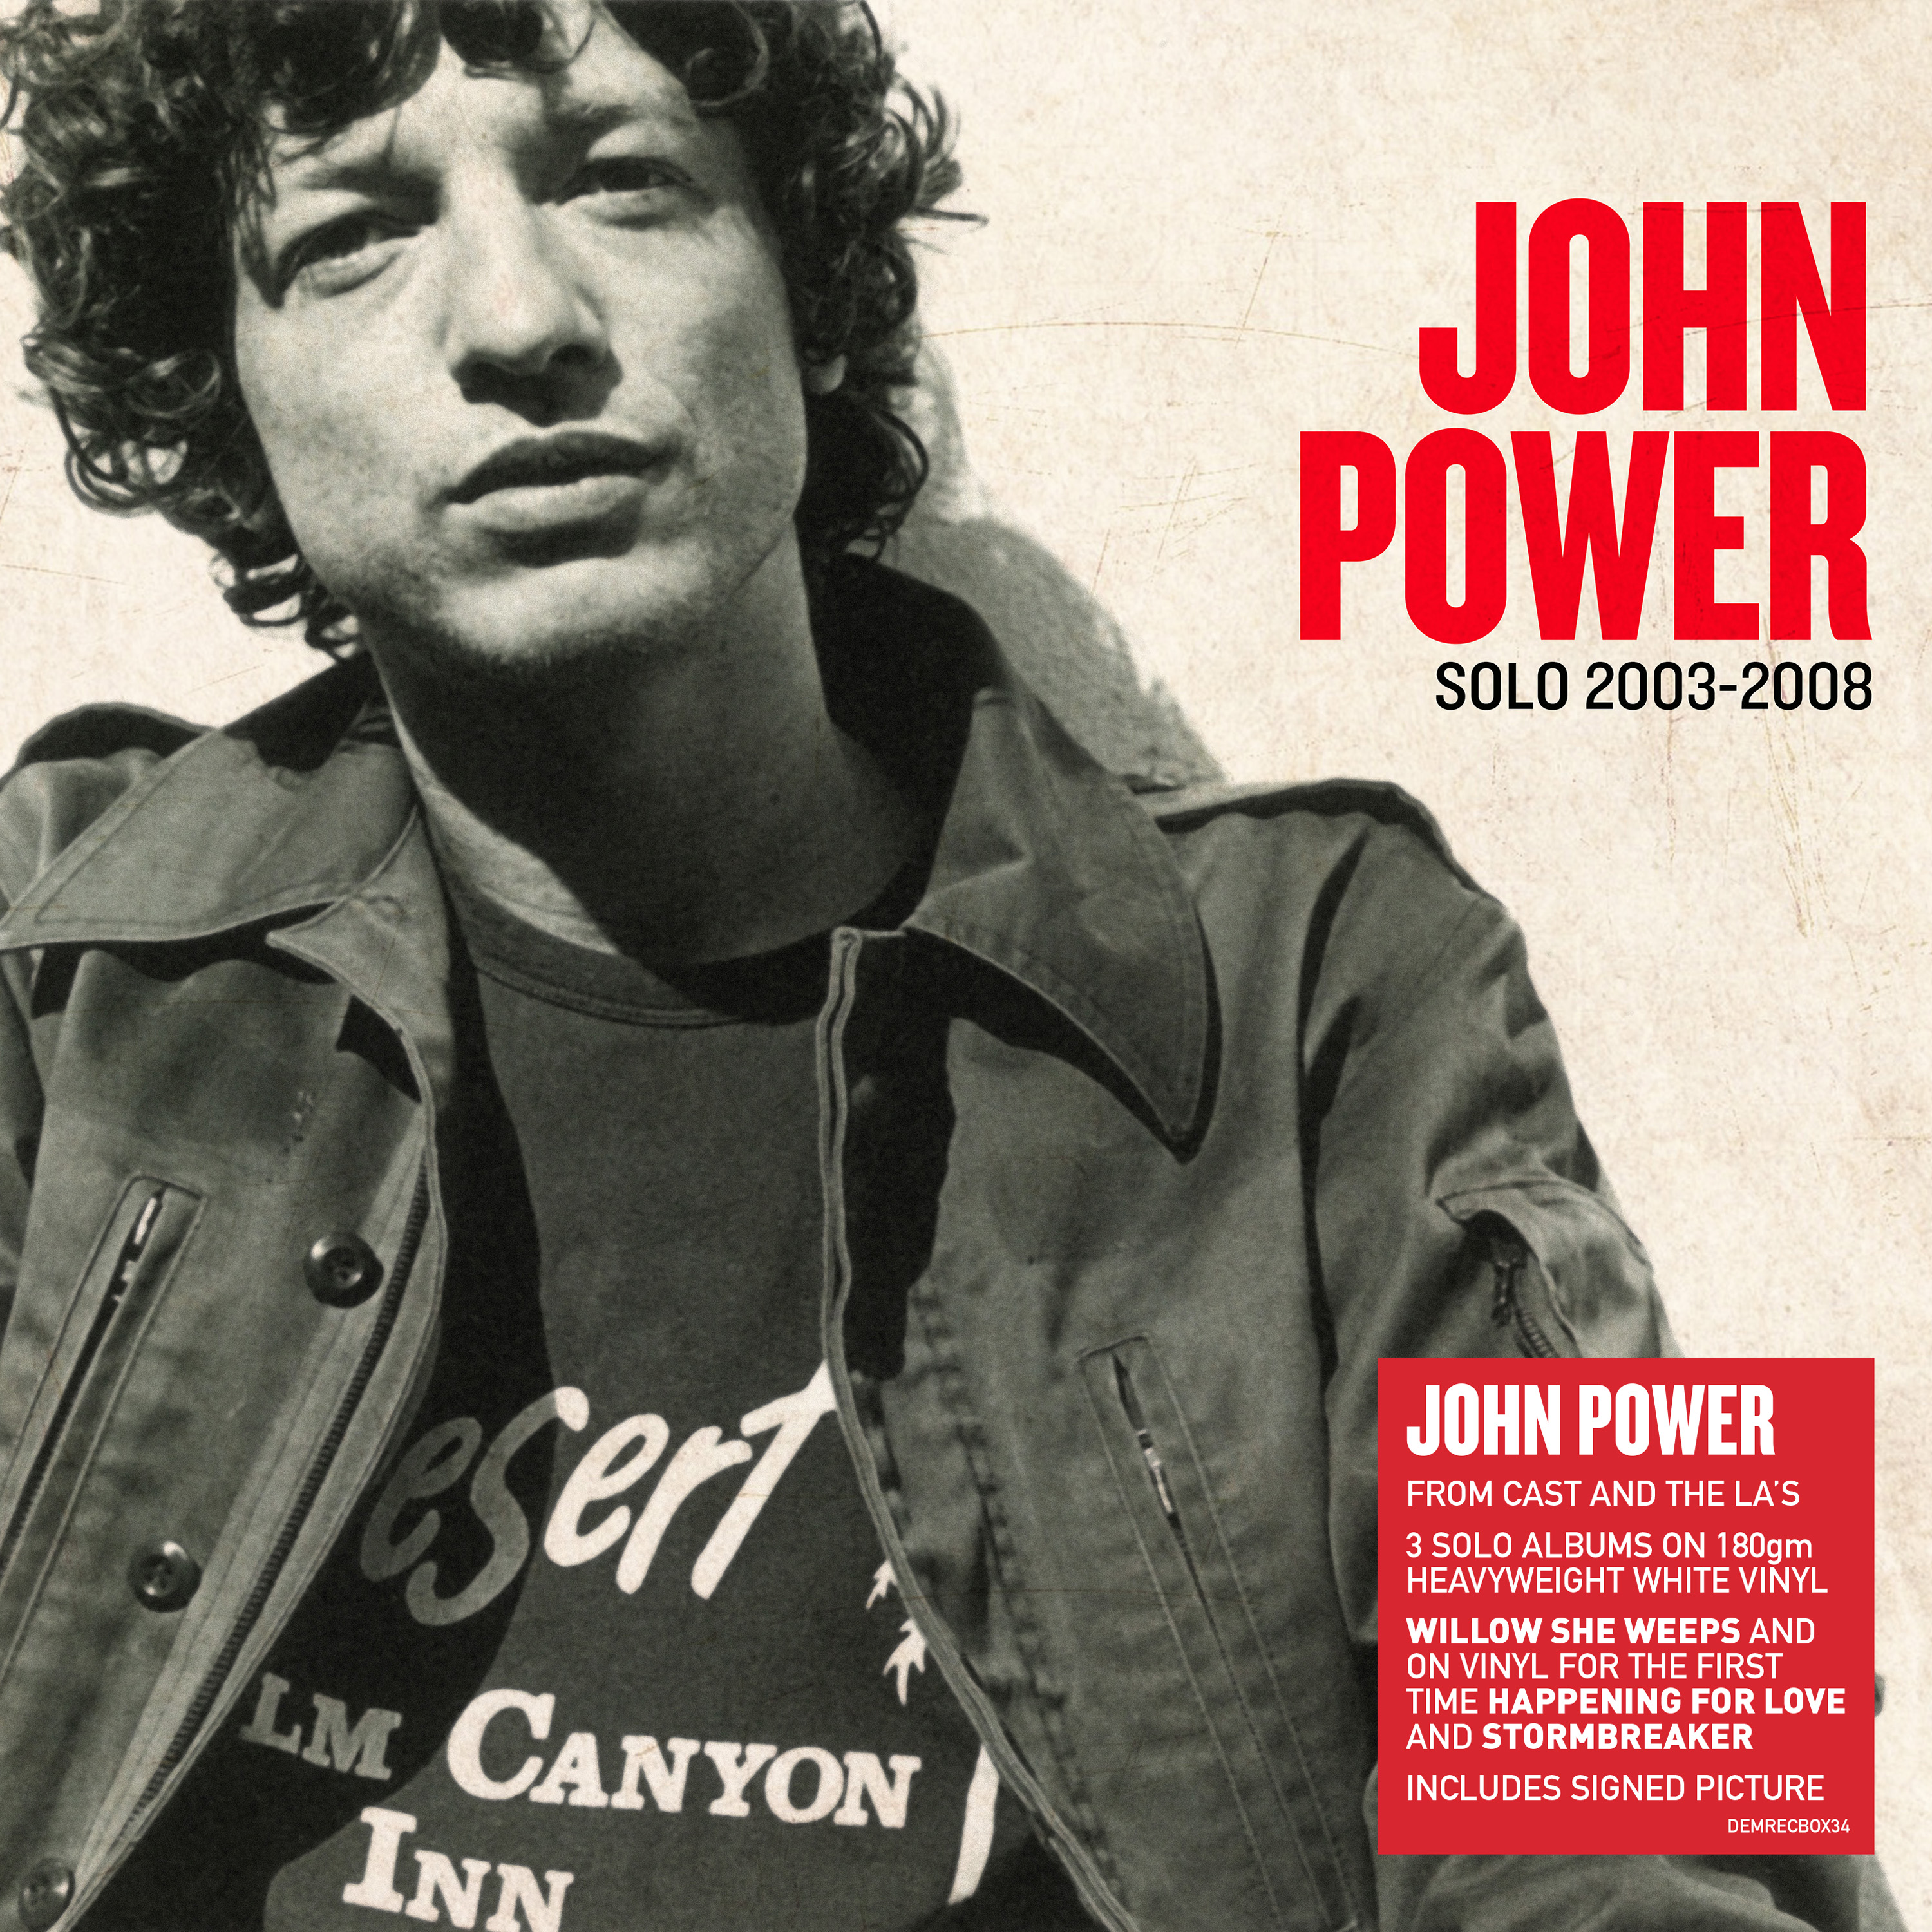 John Power - Solo 2003 - 2008